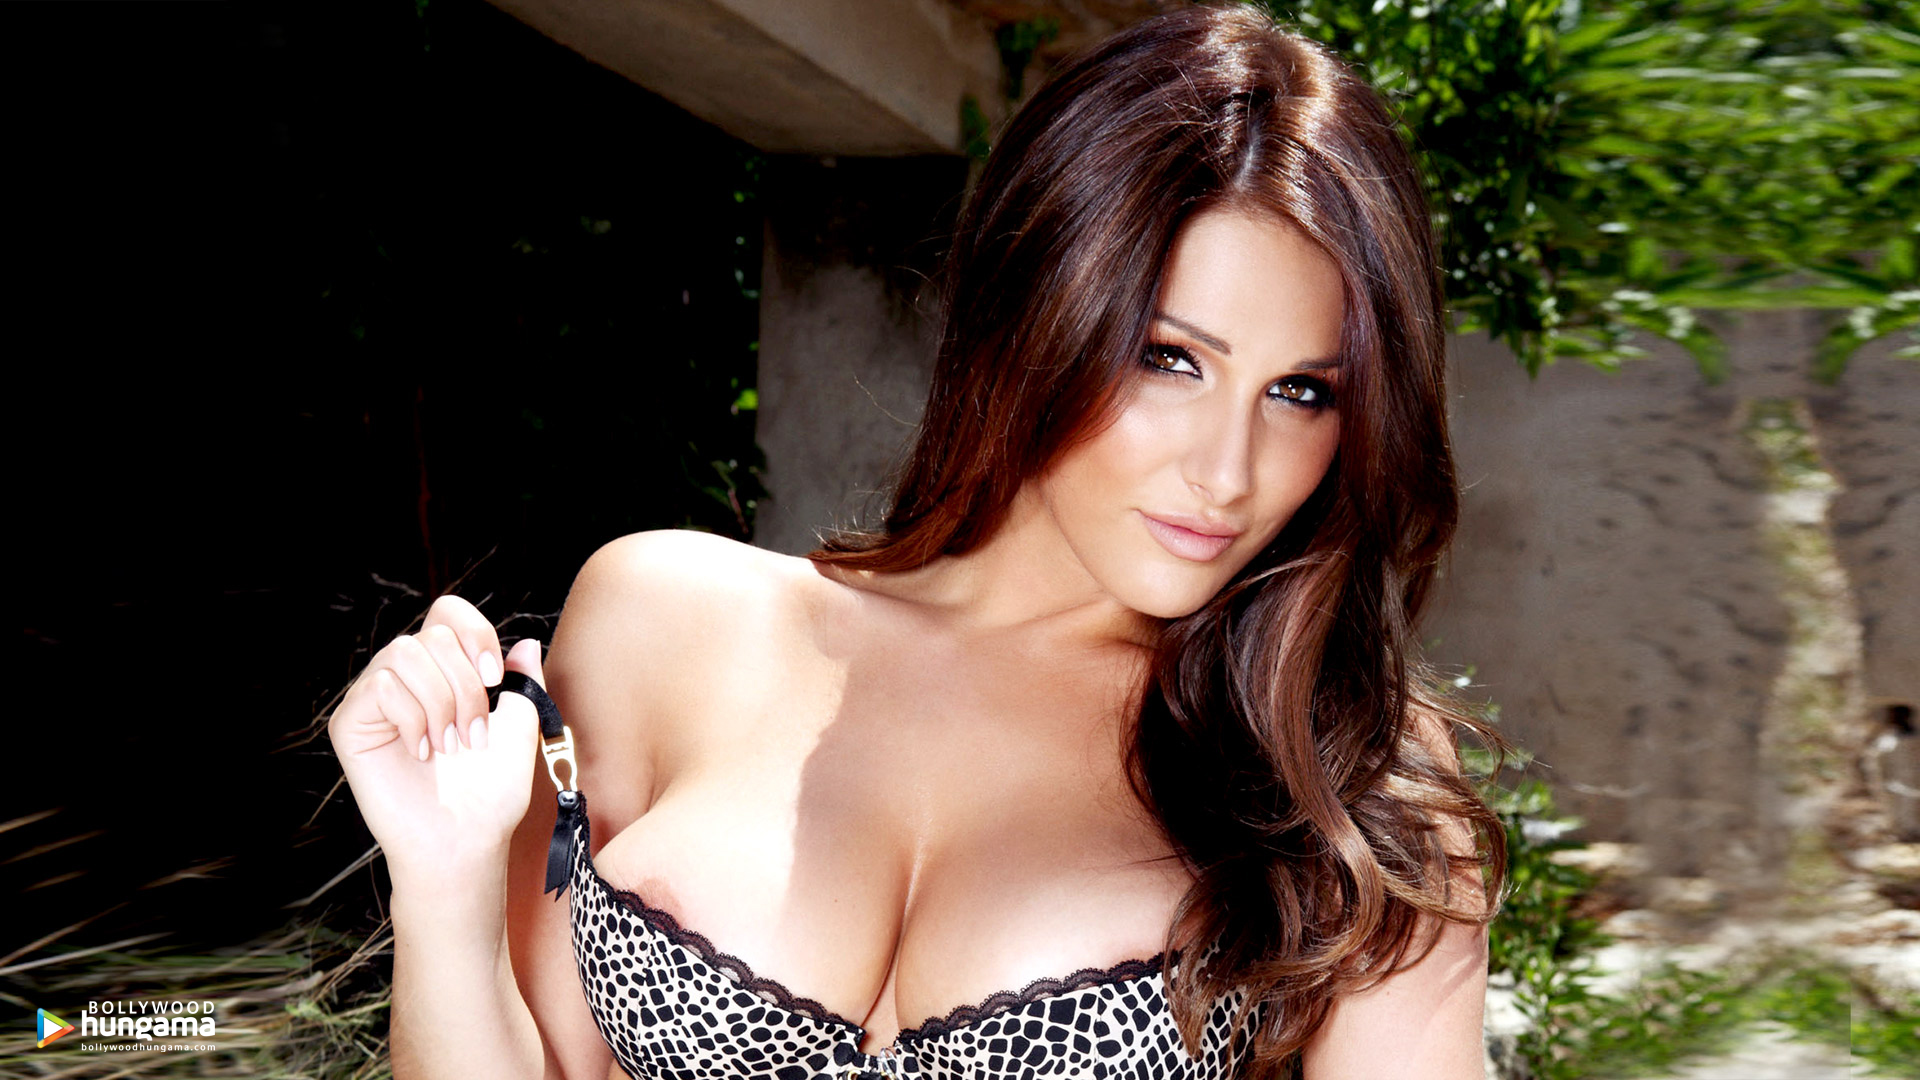 Pinder pics lucy Lucy Pinder